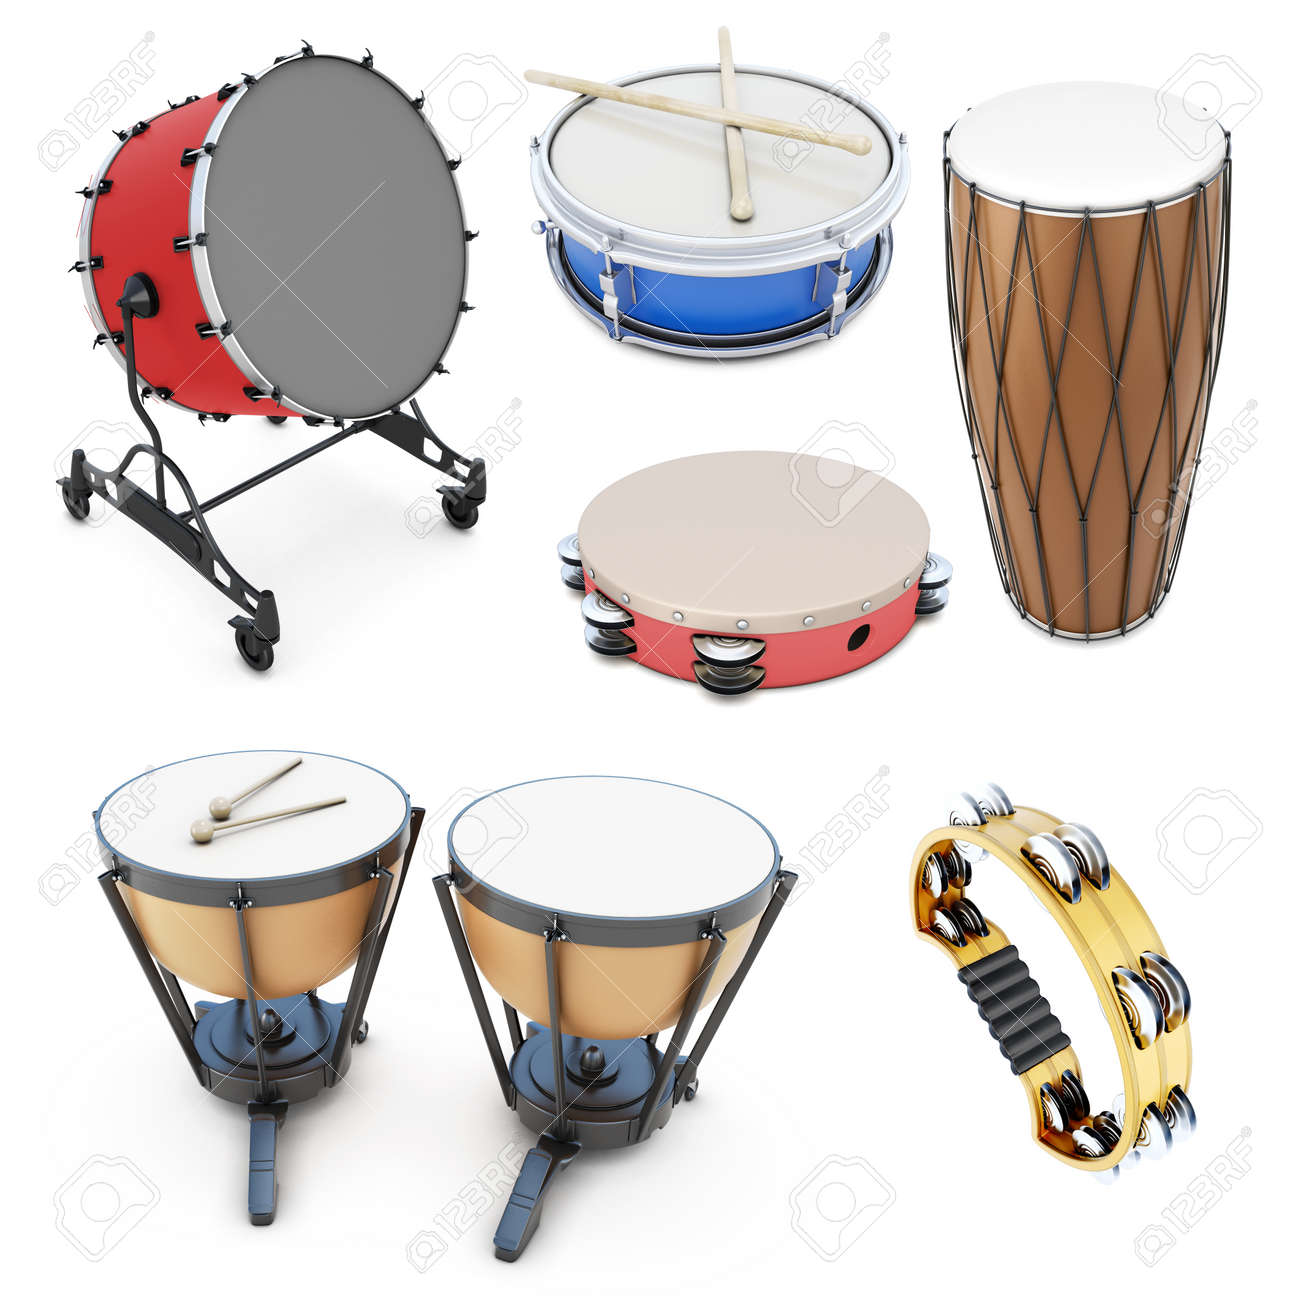 35962 Drums Stock Illustrations Cliparts And Royalty Free Drums